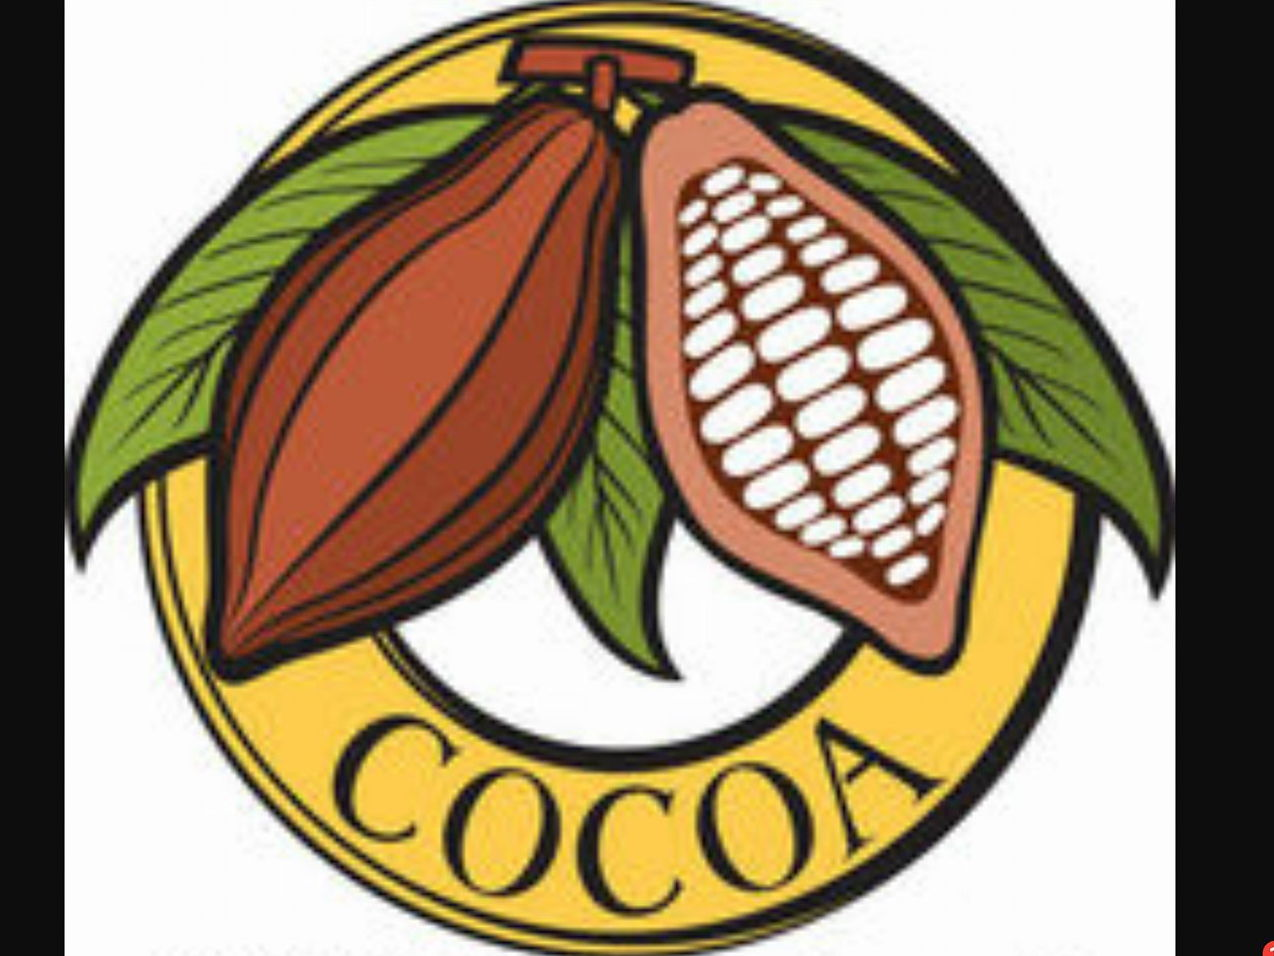 SEN Geography/PSHCE/Fair Trade Cocoa Loco Trading Game